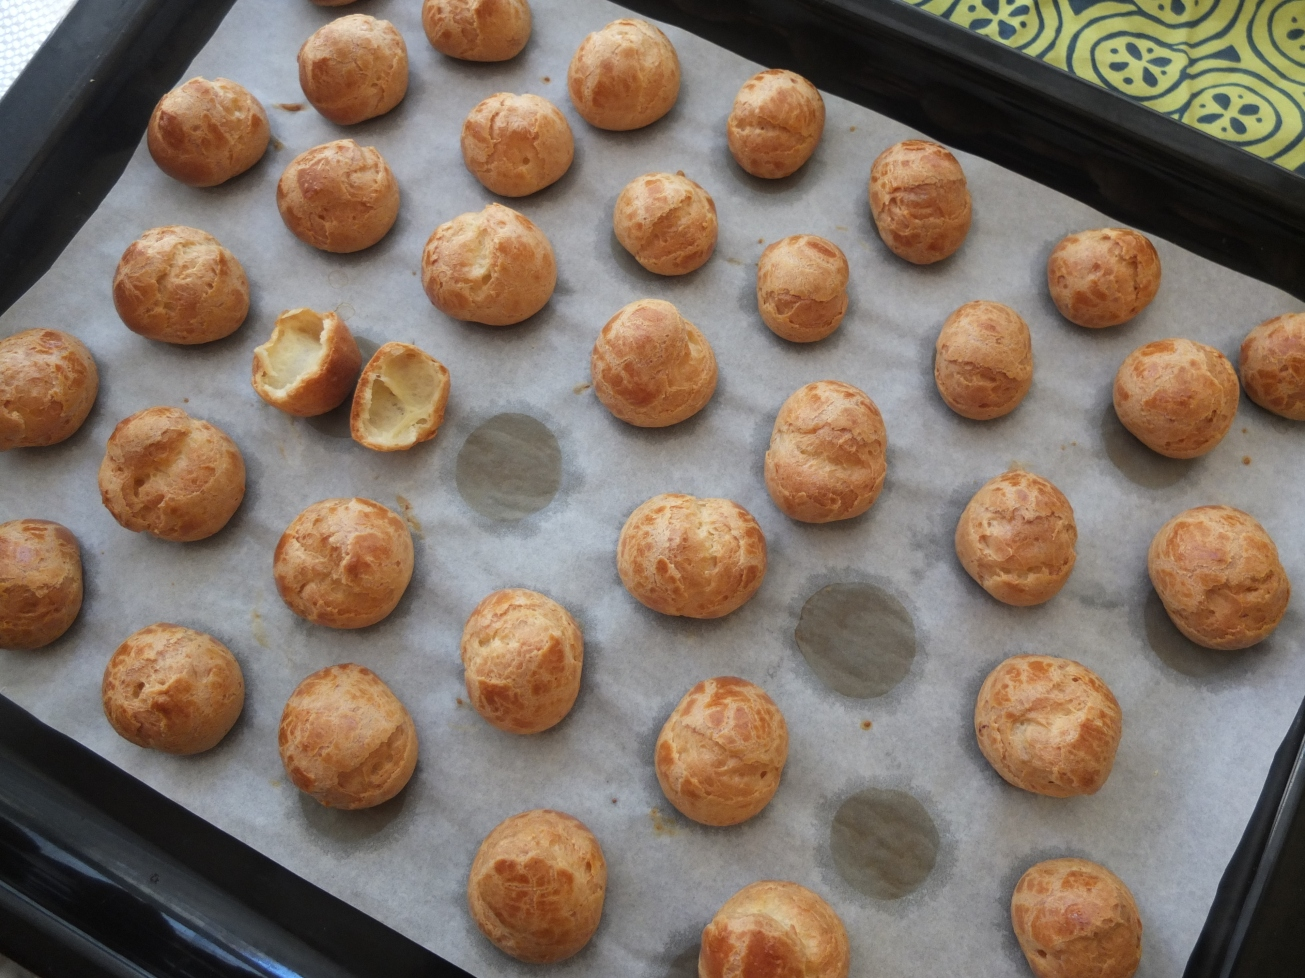 choux pastry buns